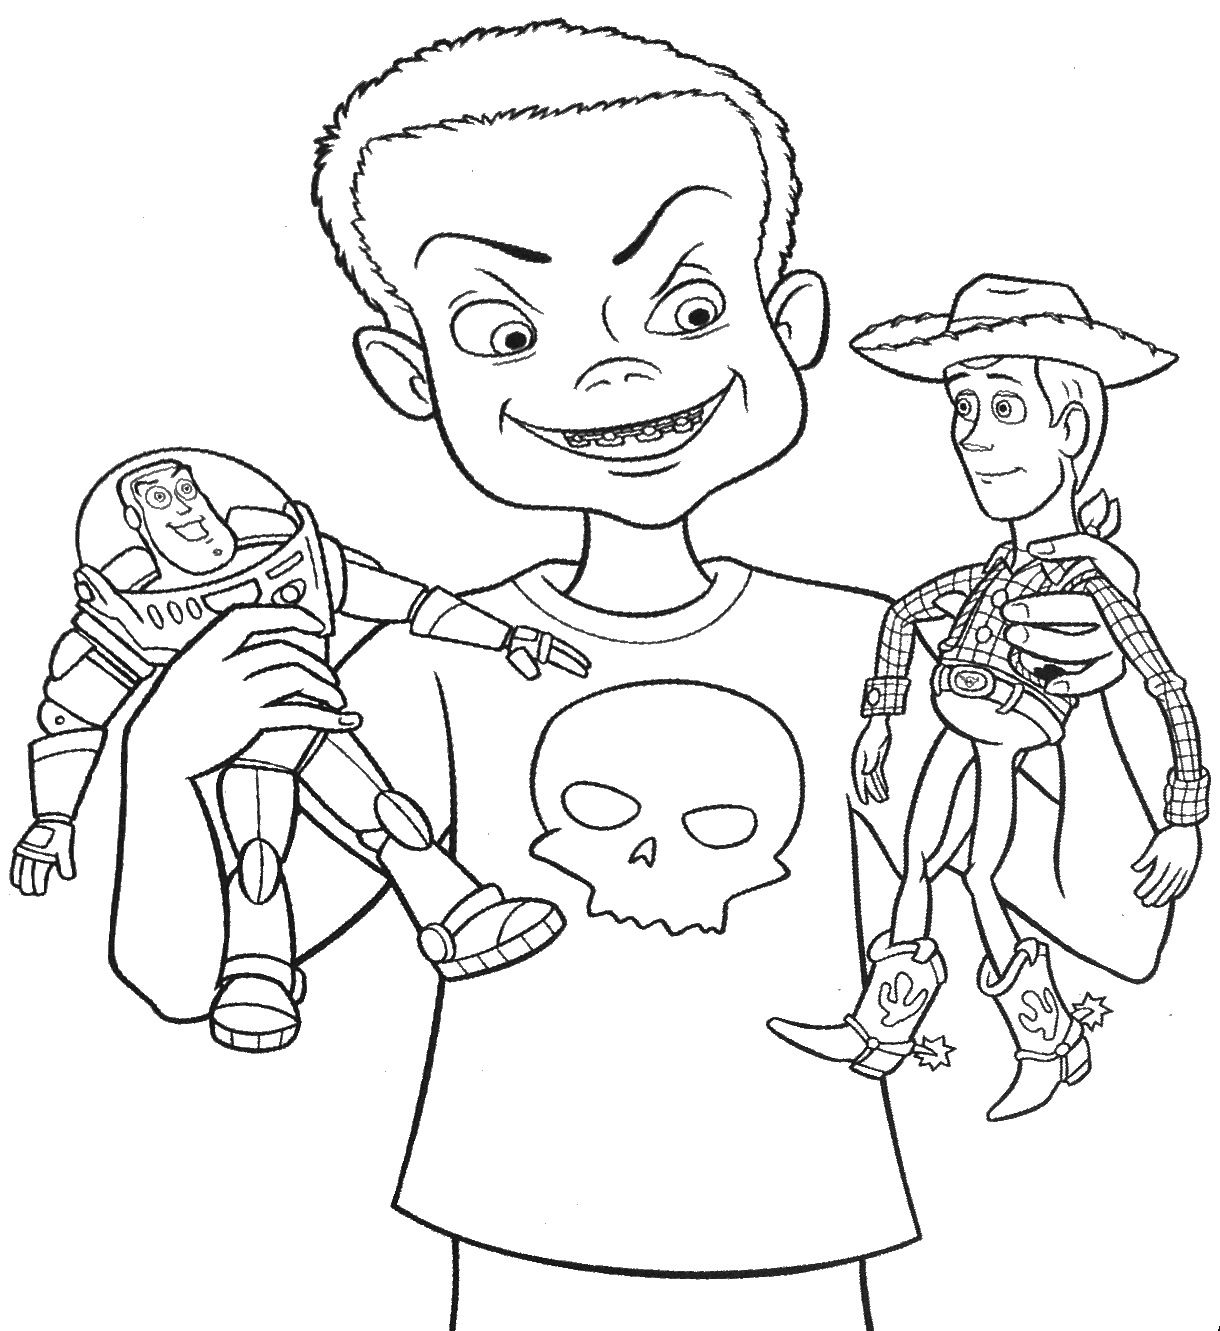 toy story coloring pages Googlesøgning Toy story